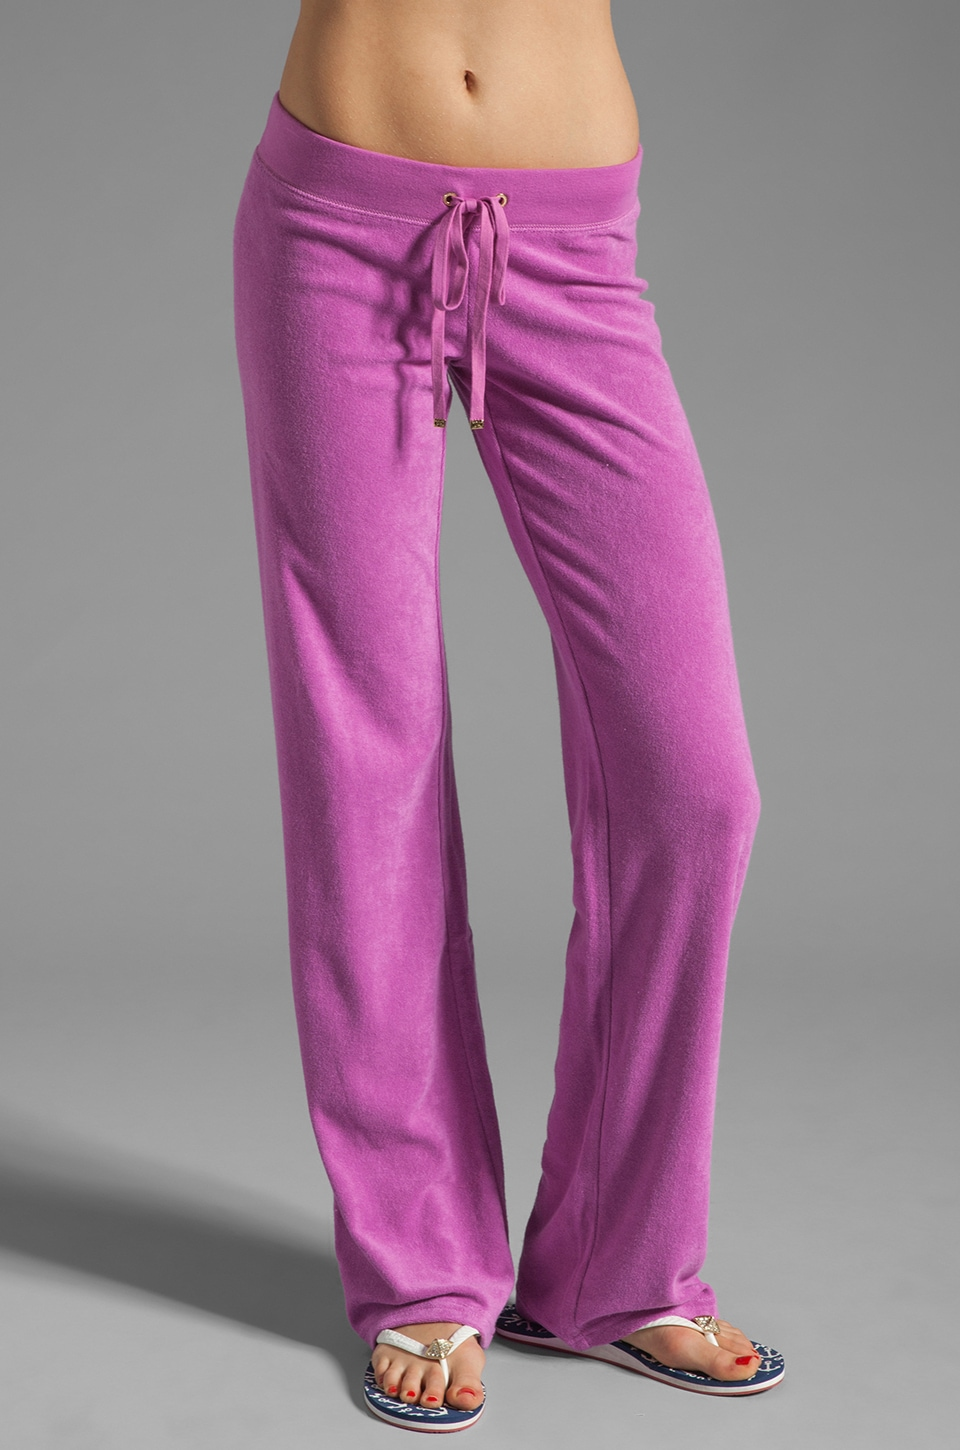 Juicy Couture Terry Original Leg Pant in Crocus